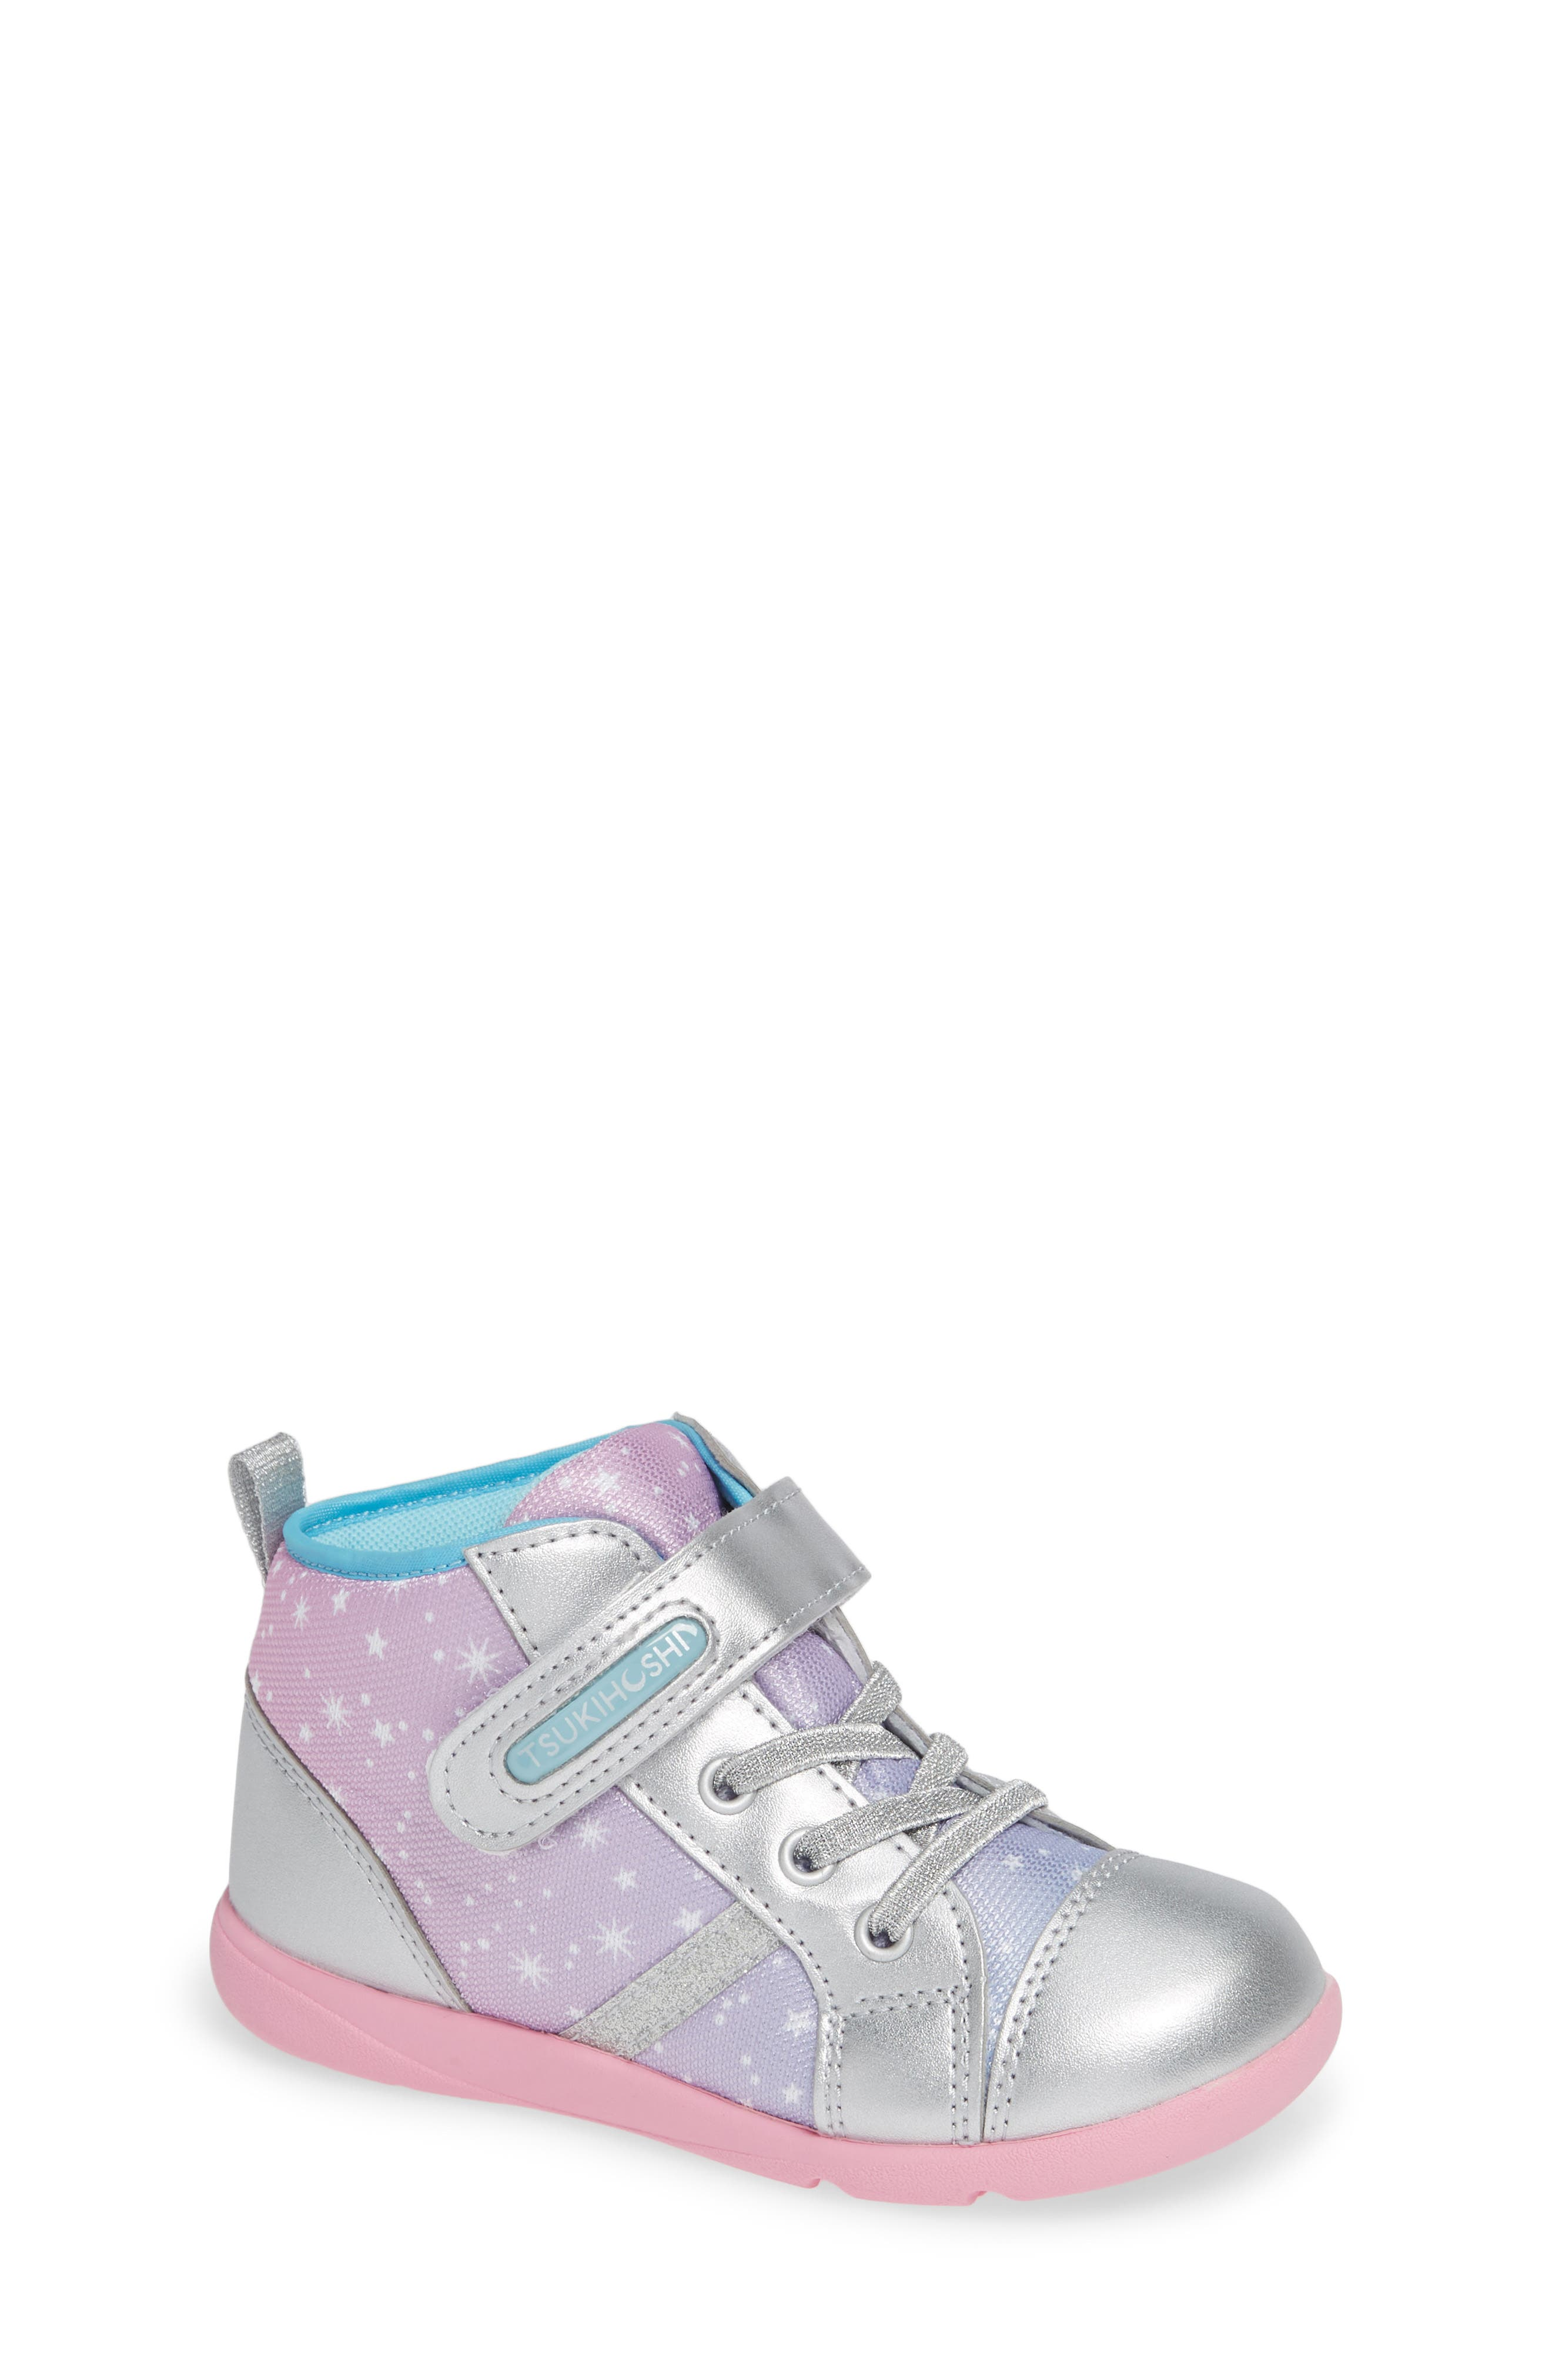 Star Washable Sneaker,                         Main,                         color, SILVER/ PINK